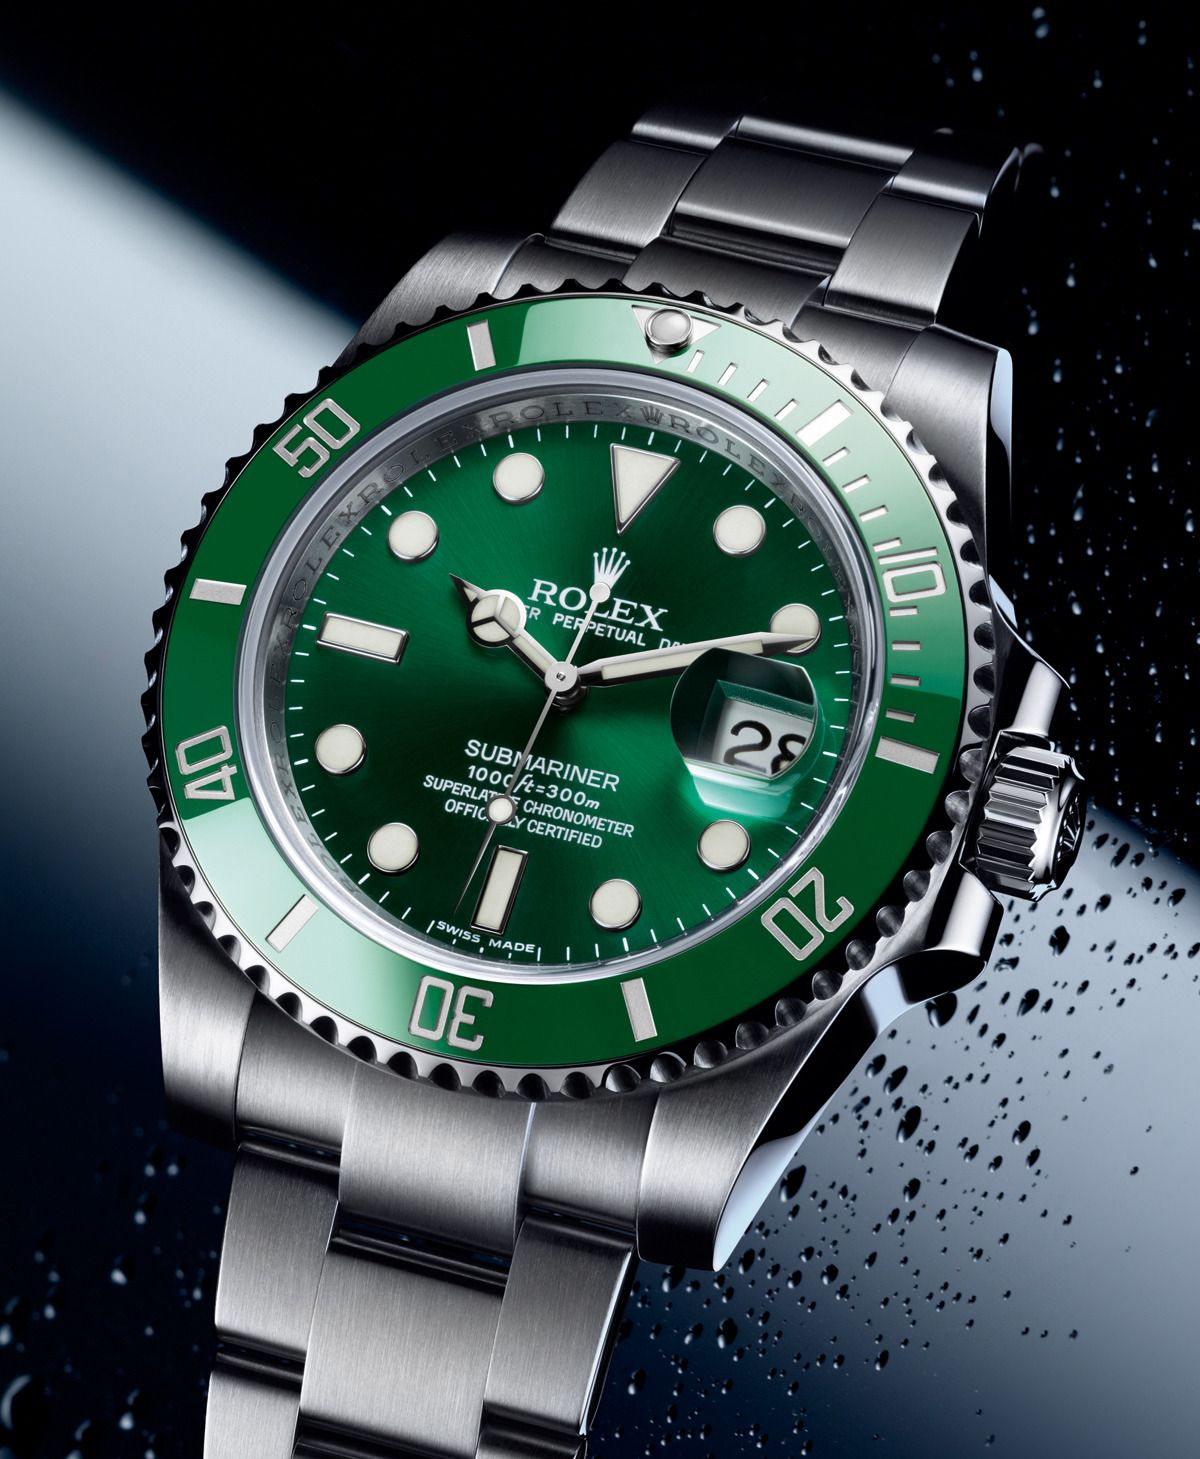 325b8e9c1c1 Rolex Submariner No Date and Green is the way I like it but no stock in  Hong Kong and Singapore.